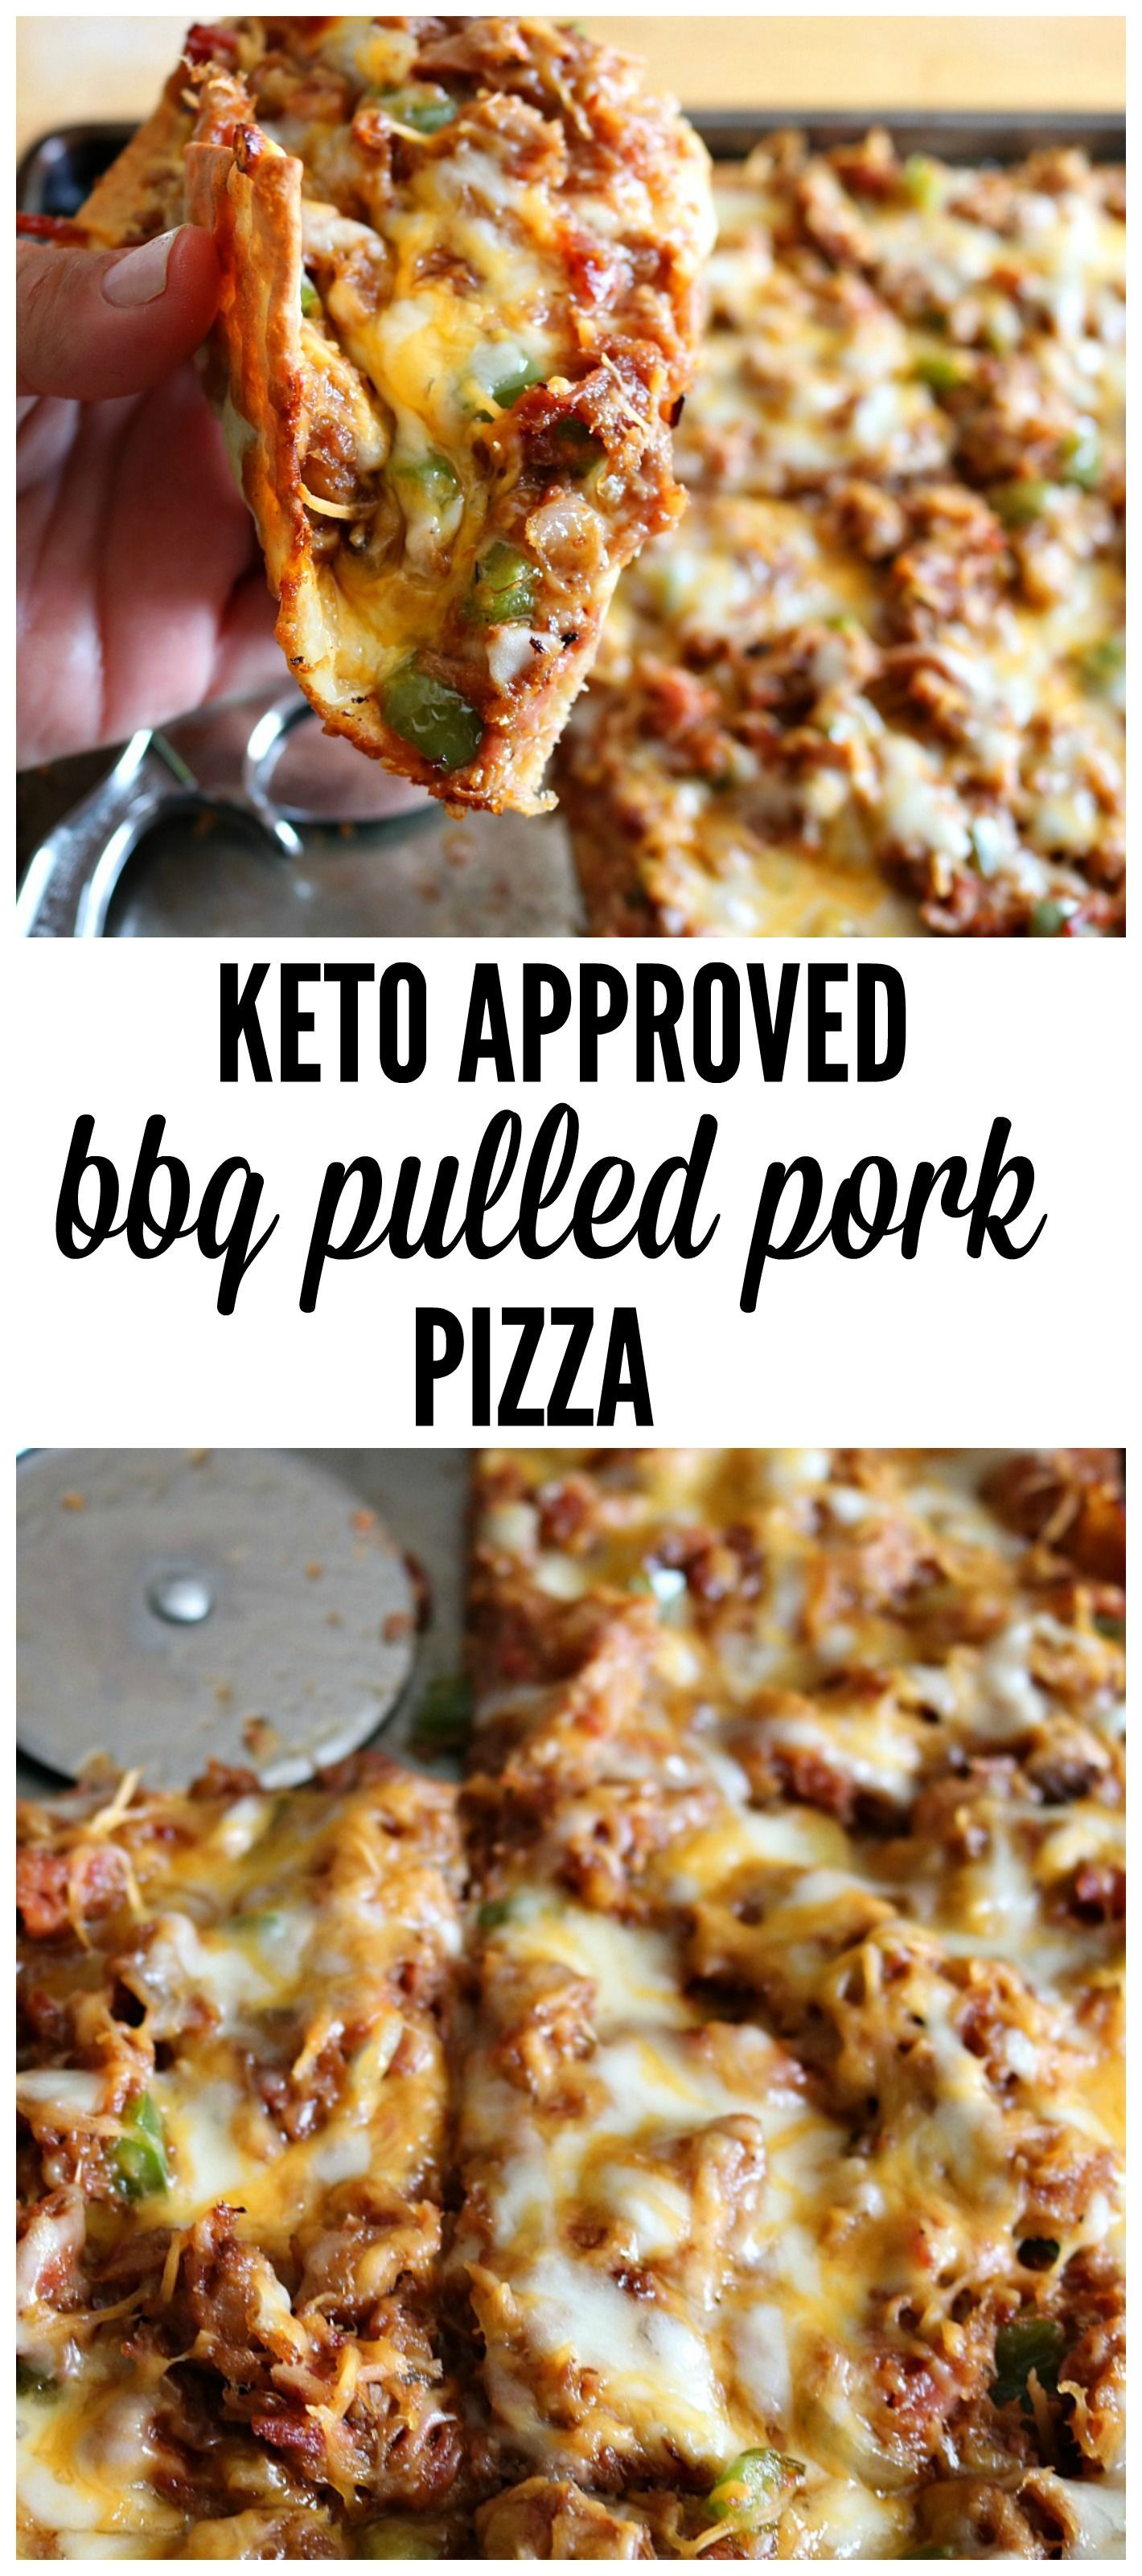 Fathead Pizza- BBQ Pulled Pork Don't miss out on BBQ sauce anymore! We have an amazing keto approved sauce and a delicious Keto Fathead Pizza recipe to use it on. BBQ pulled pork.  keto fathead pizza bbq pulled porkDon't miss out on BBQ sauce anymore! We have an amazing keto approved sauce and a delicious Keto Fathead Pizza recipe to use it on. BBQ pulled pork.  keto fathea...